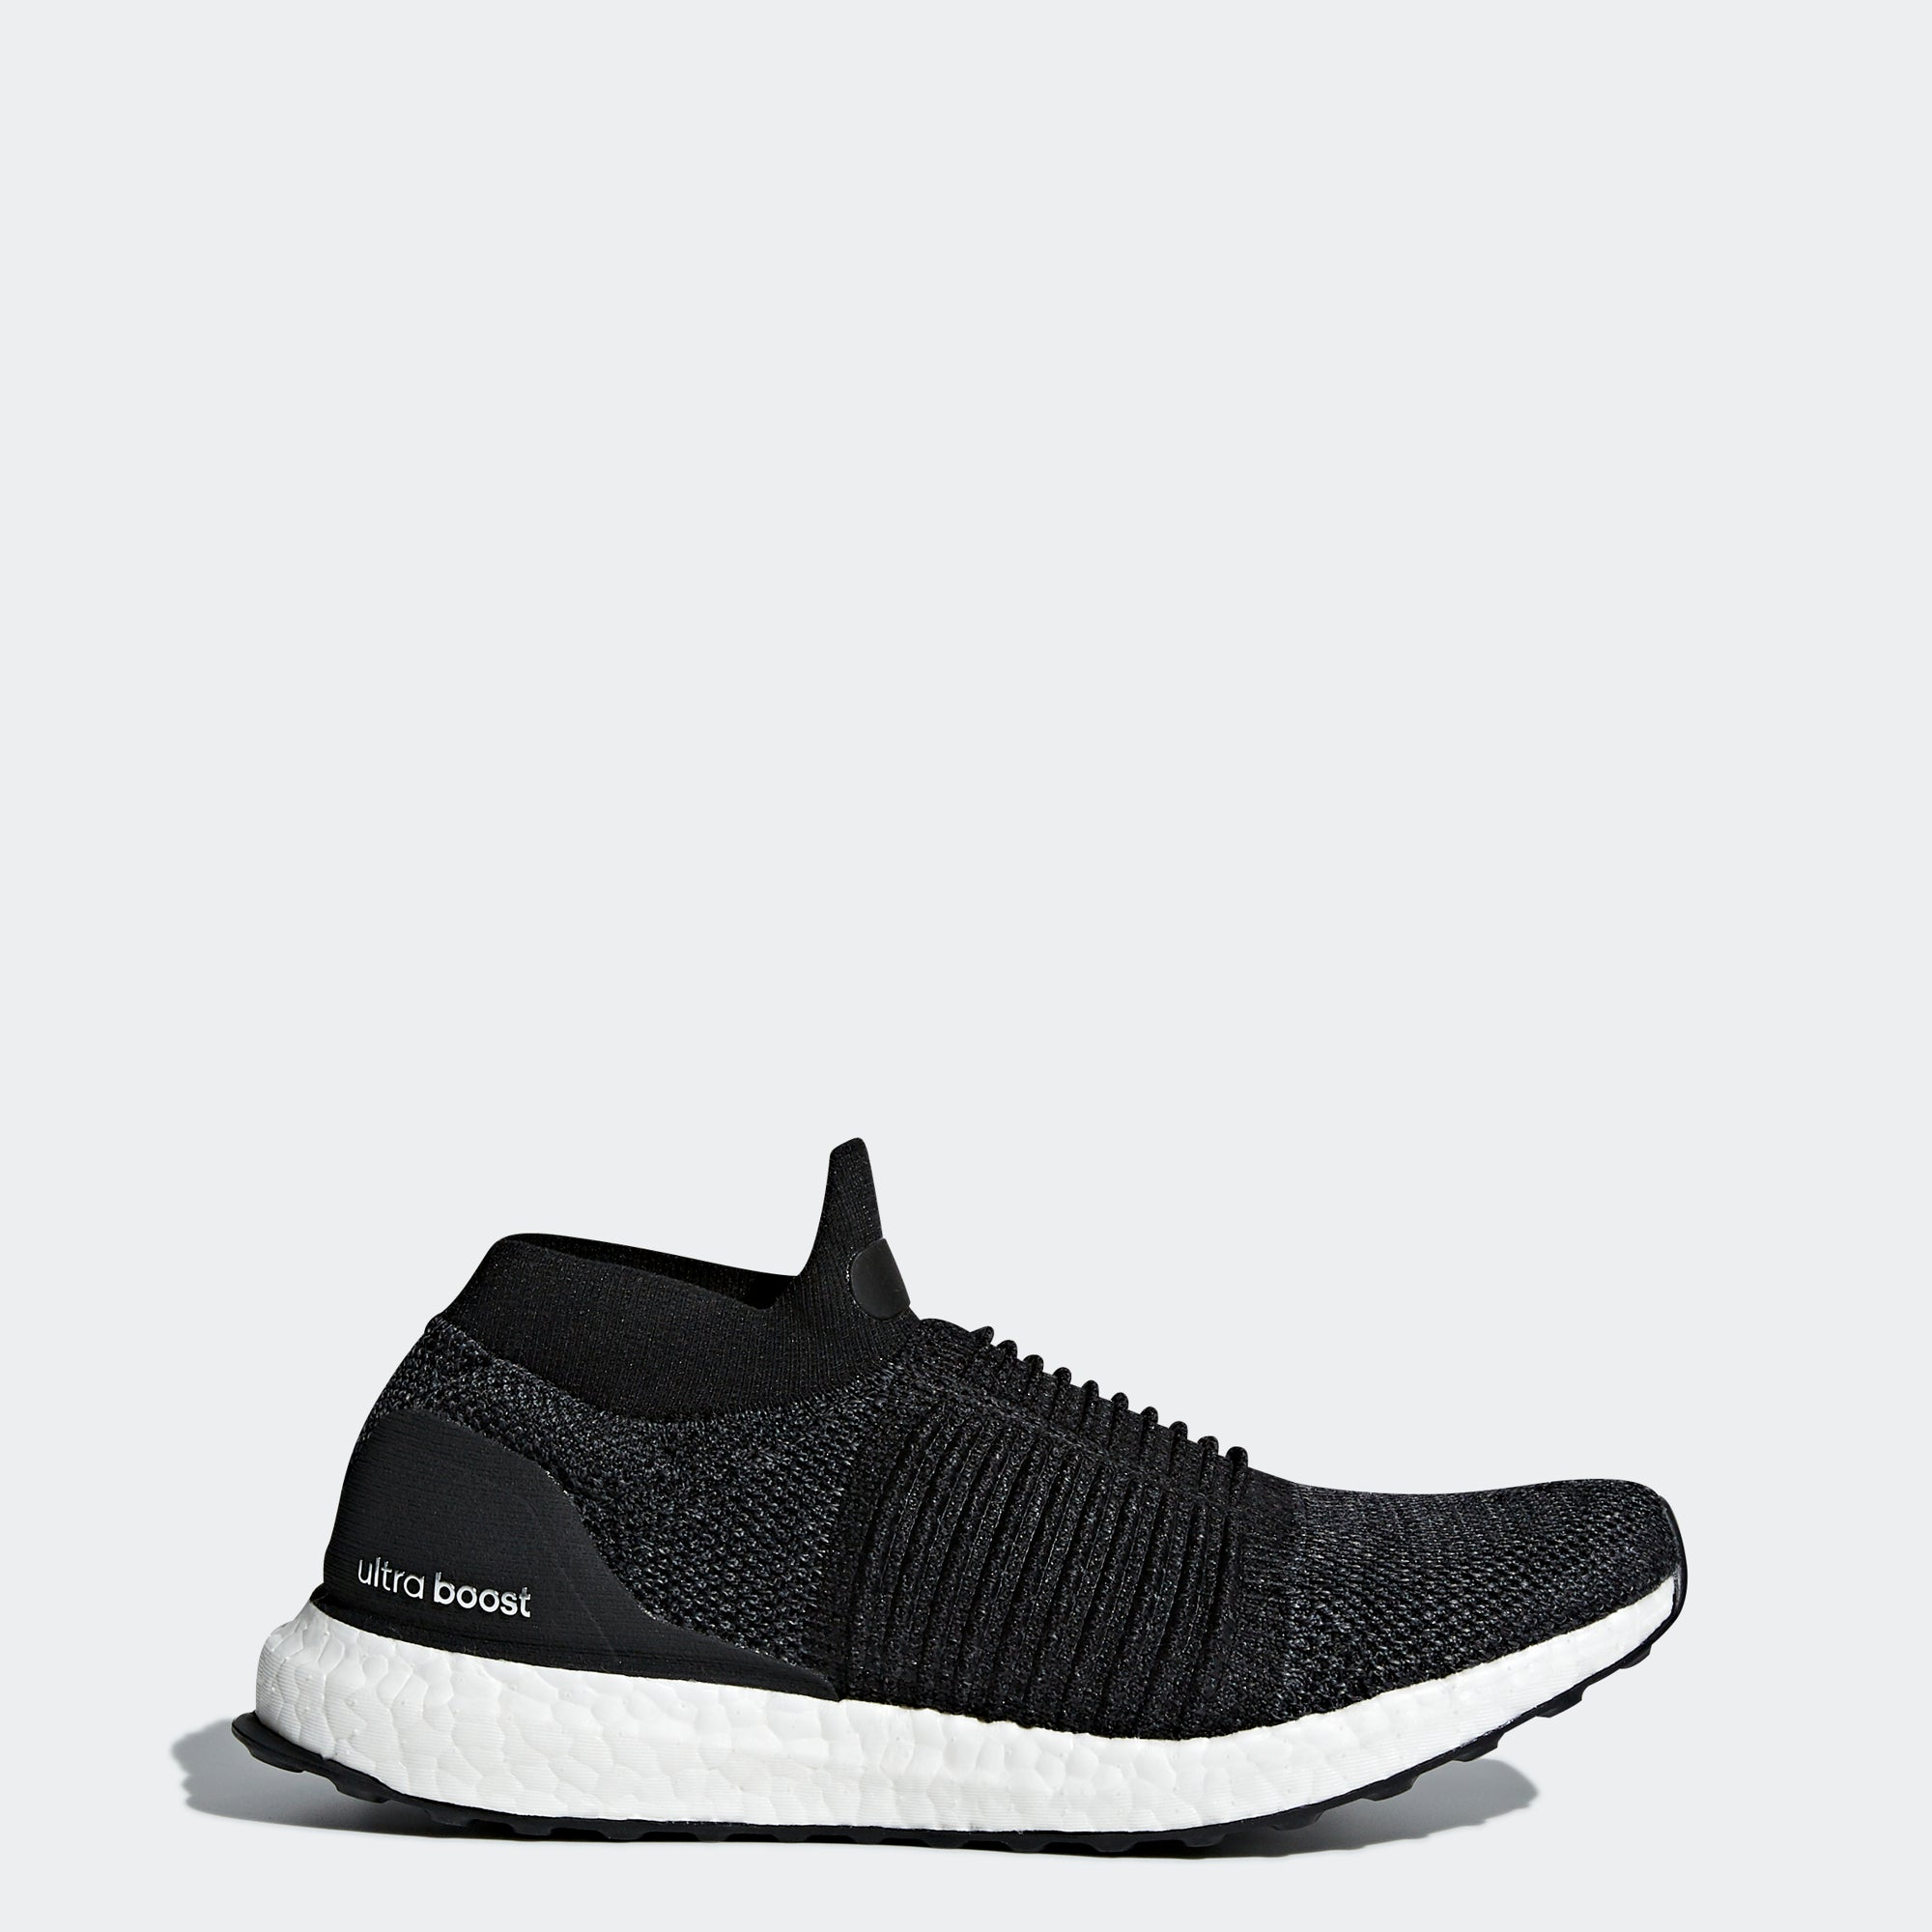 86414d1a2b7d2 Women s adidas Running Ultraboost Laceless Shoes Core Black with White